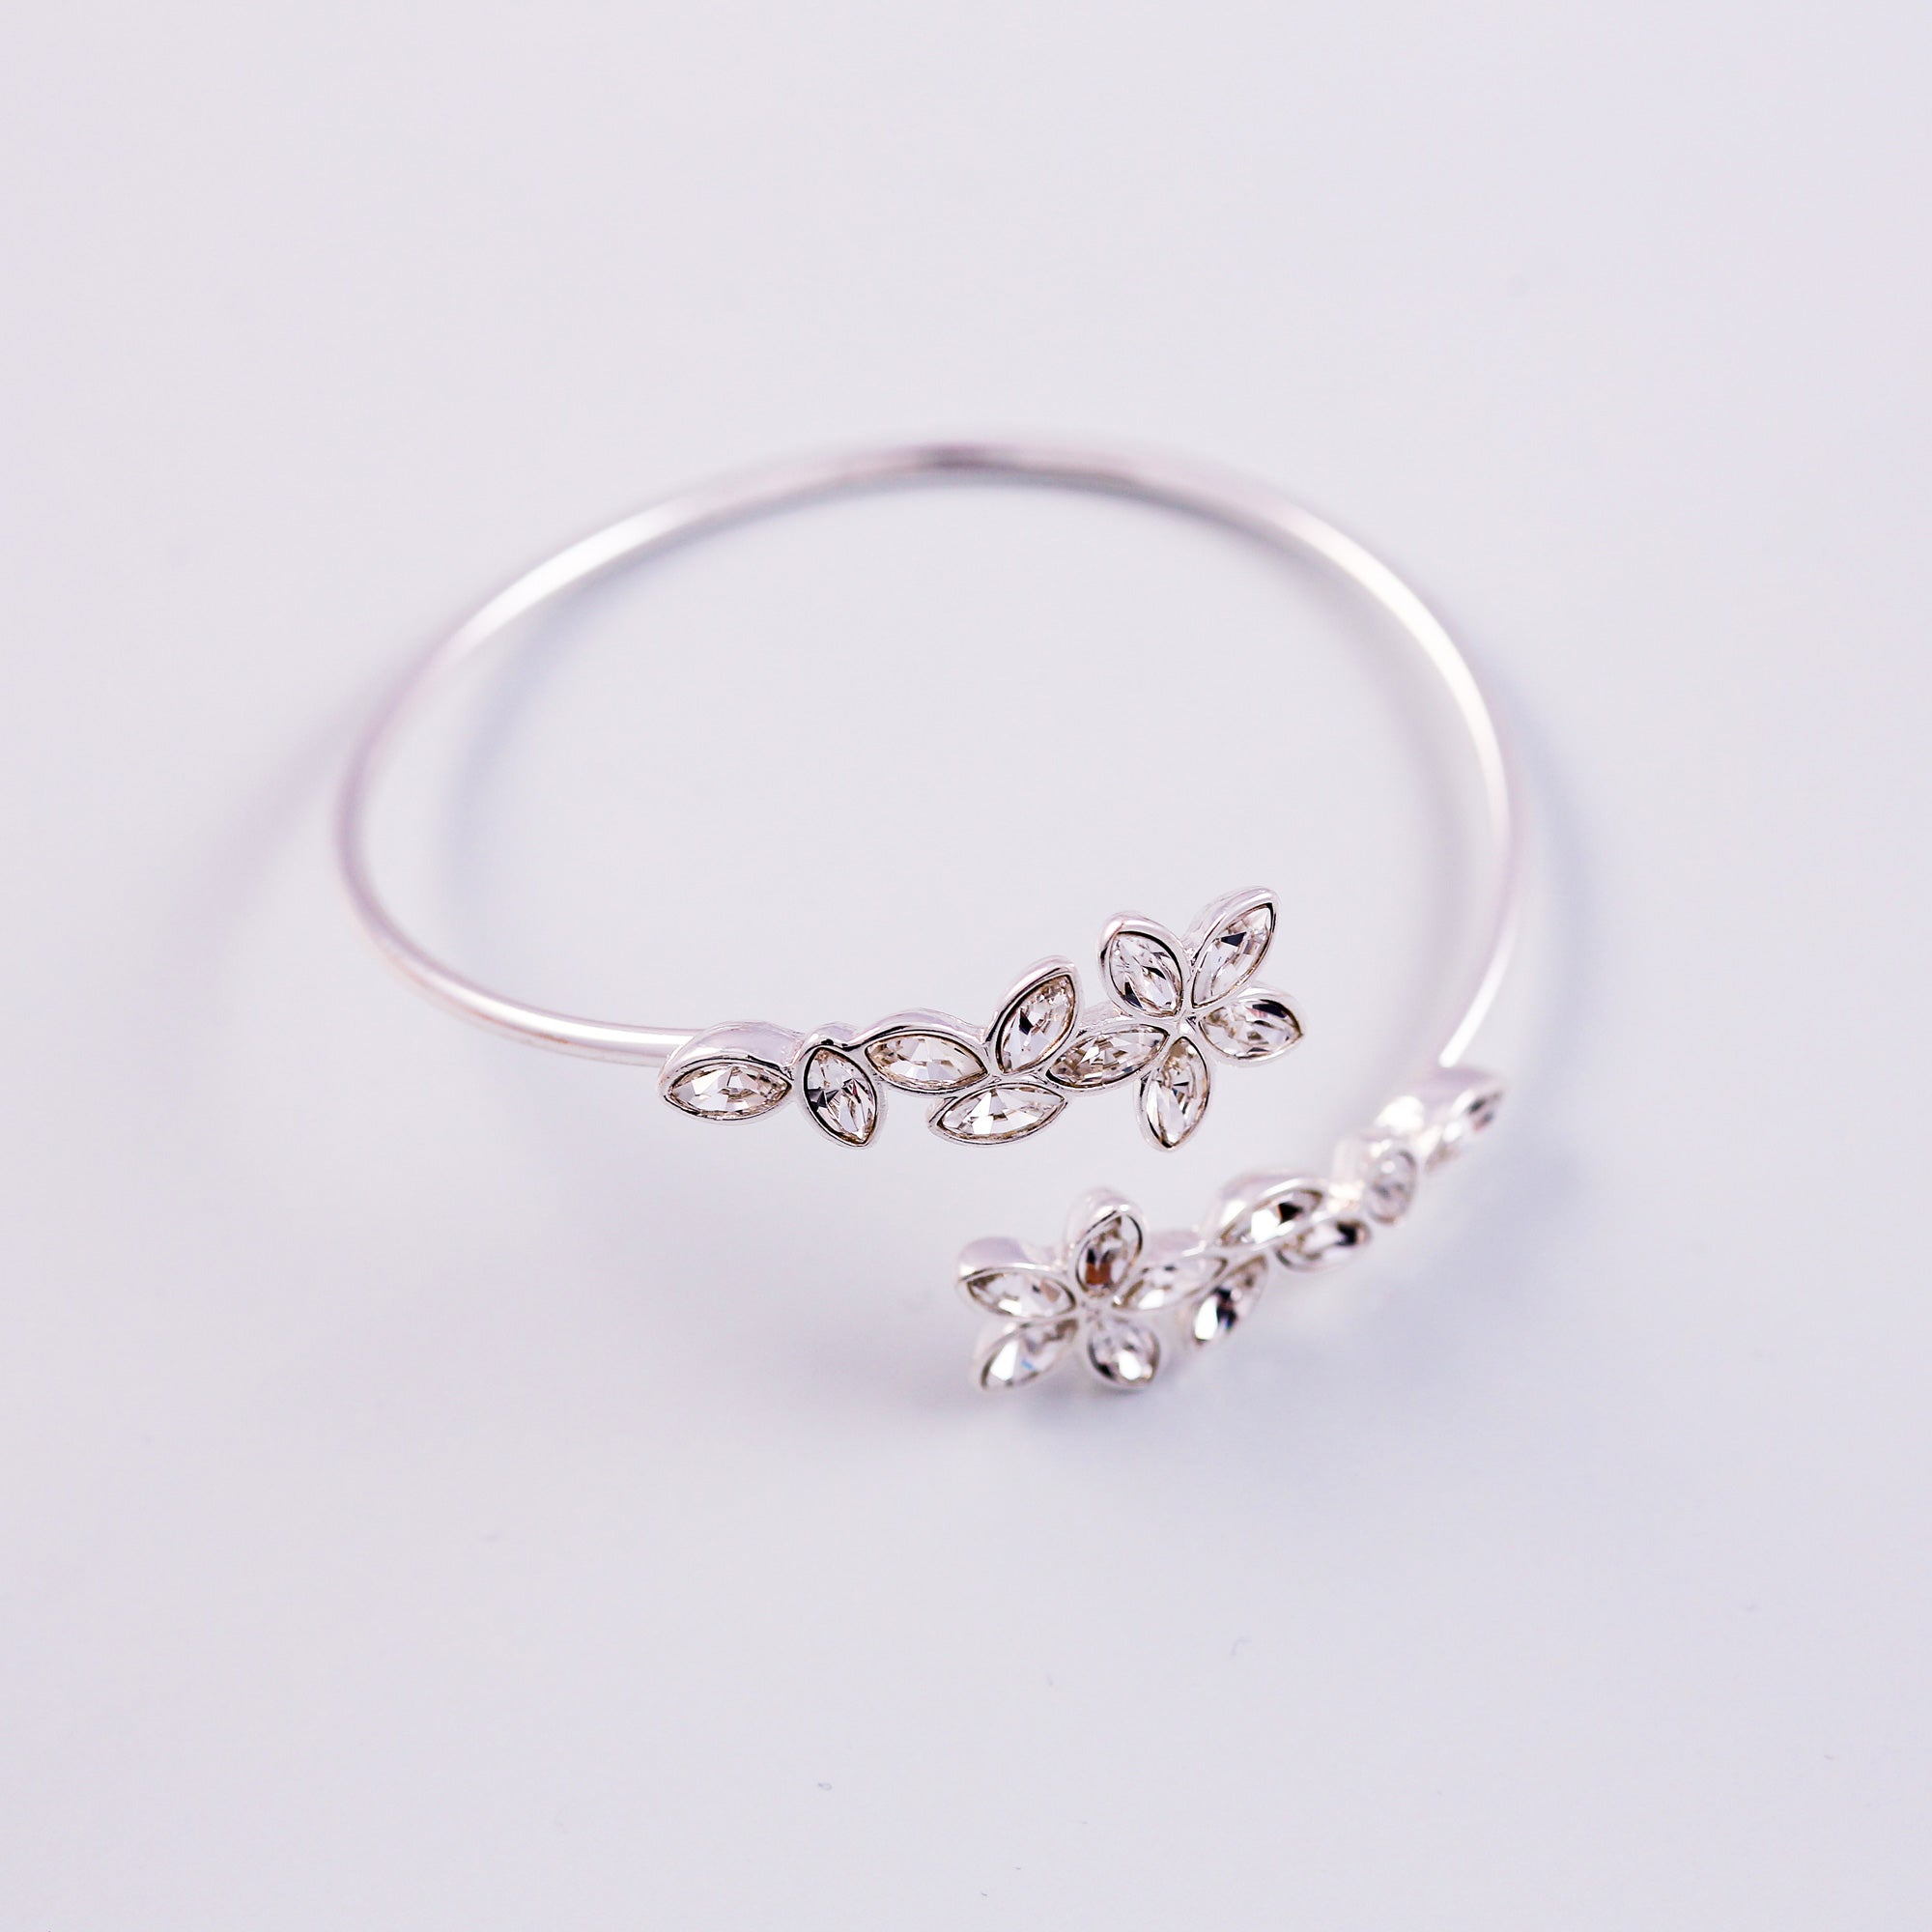 Silver & Crystal Cherry Blossom Sakura Wraparound Bangle